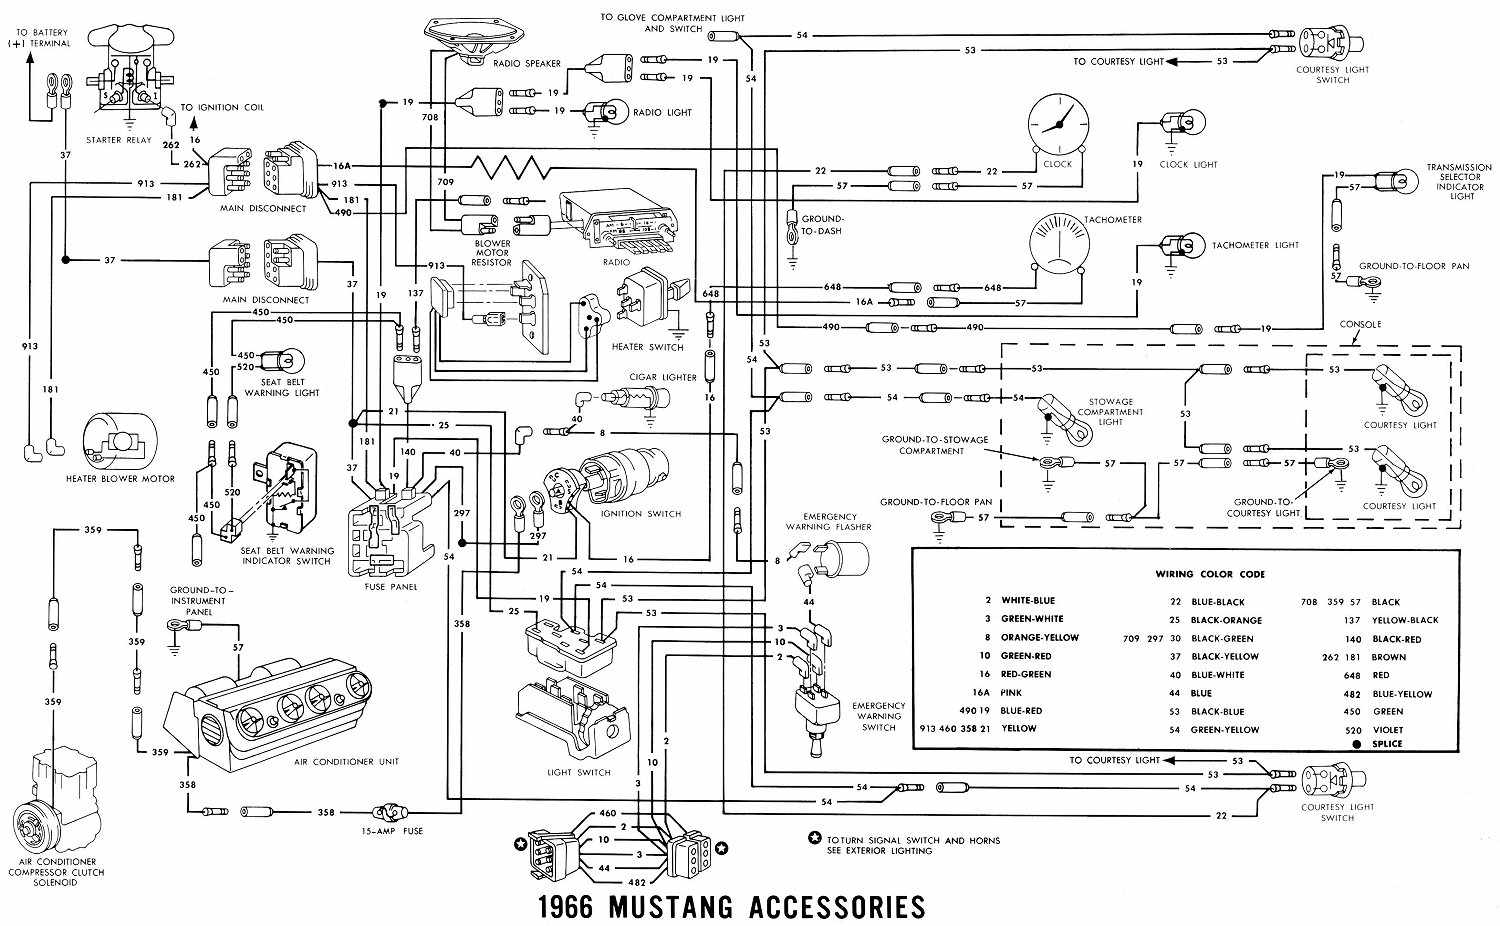 accessory wiring diagram    accessories    electrical    wiring       diagrams    of 1966 ford     accessories    electrical    wiring       diagrams    of 1966 ford